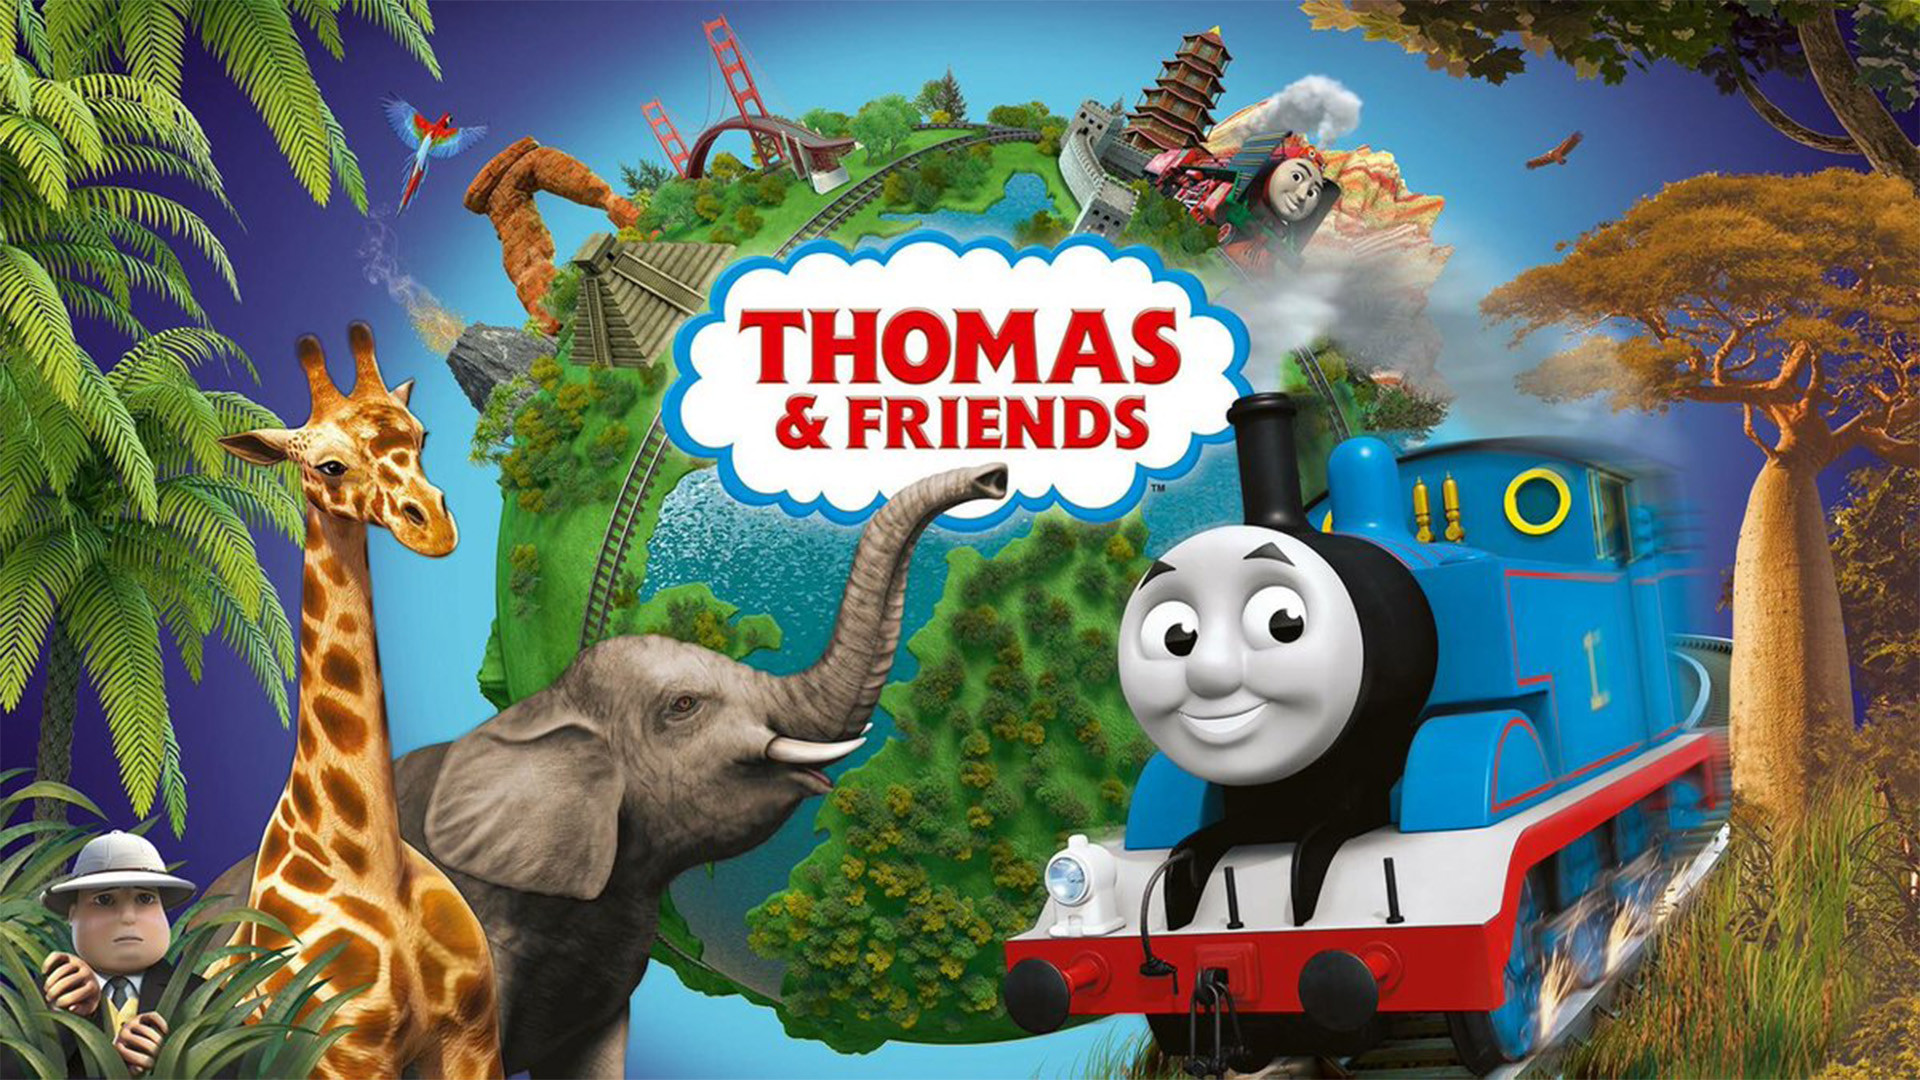 1920x1080 Thomas the Tank Engine to Become Gender-Balanced with more Female Trains,  an African Character and Episodes Abroad